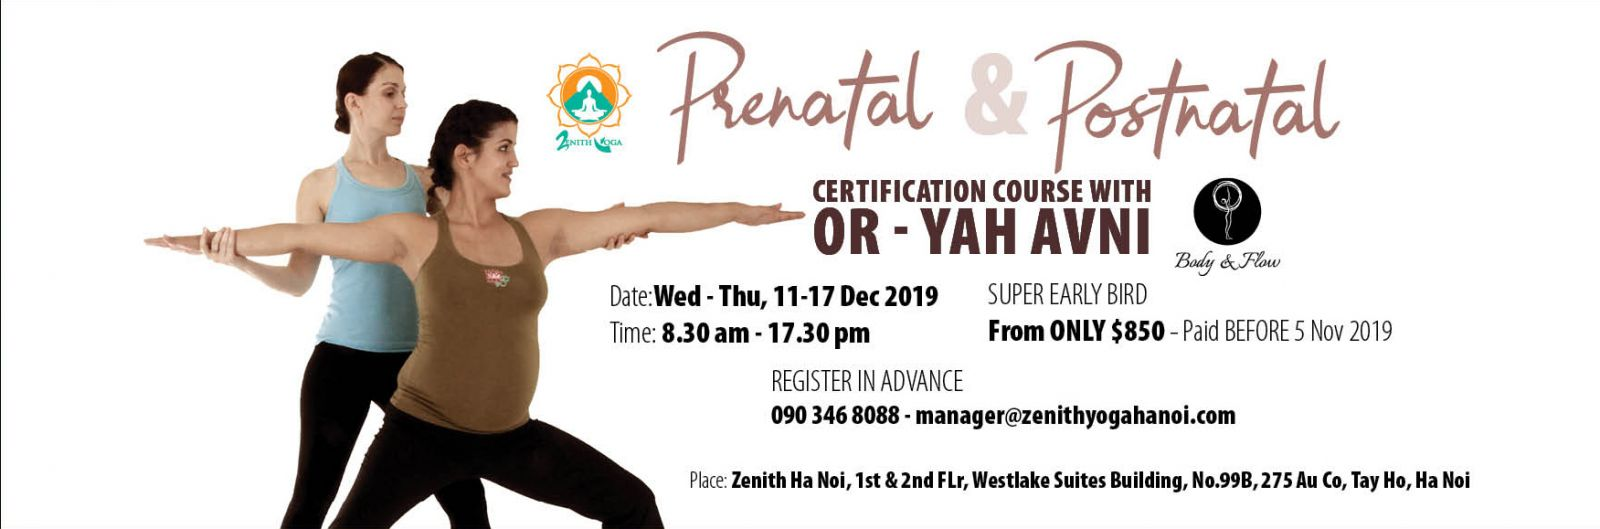 PRENATAL & POSTNATAL CERTIFICATION COURSE